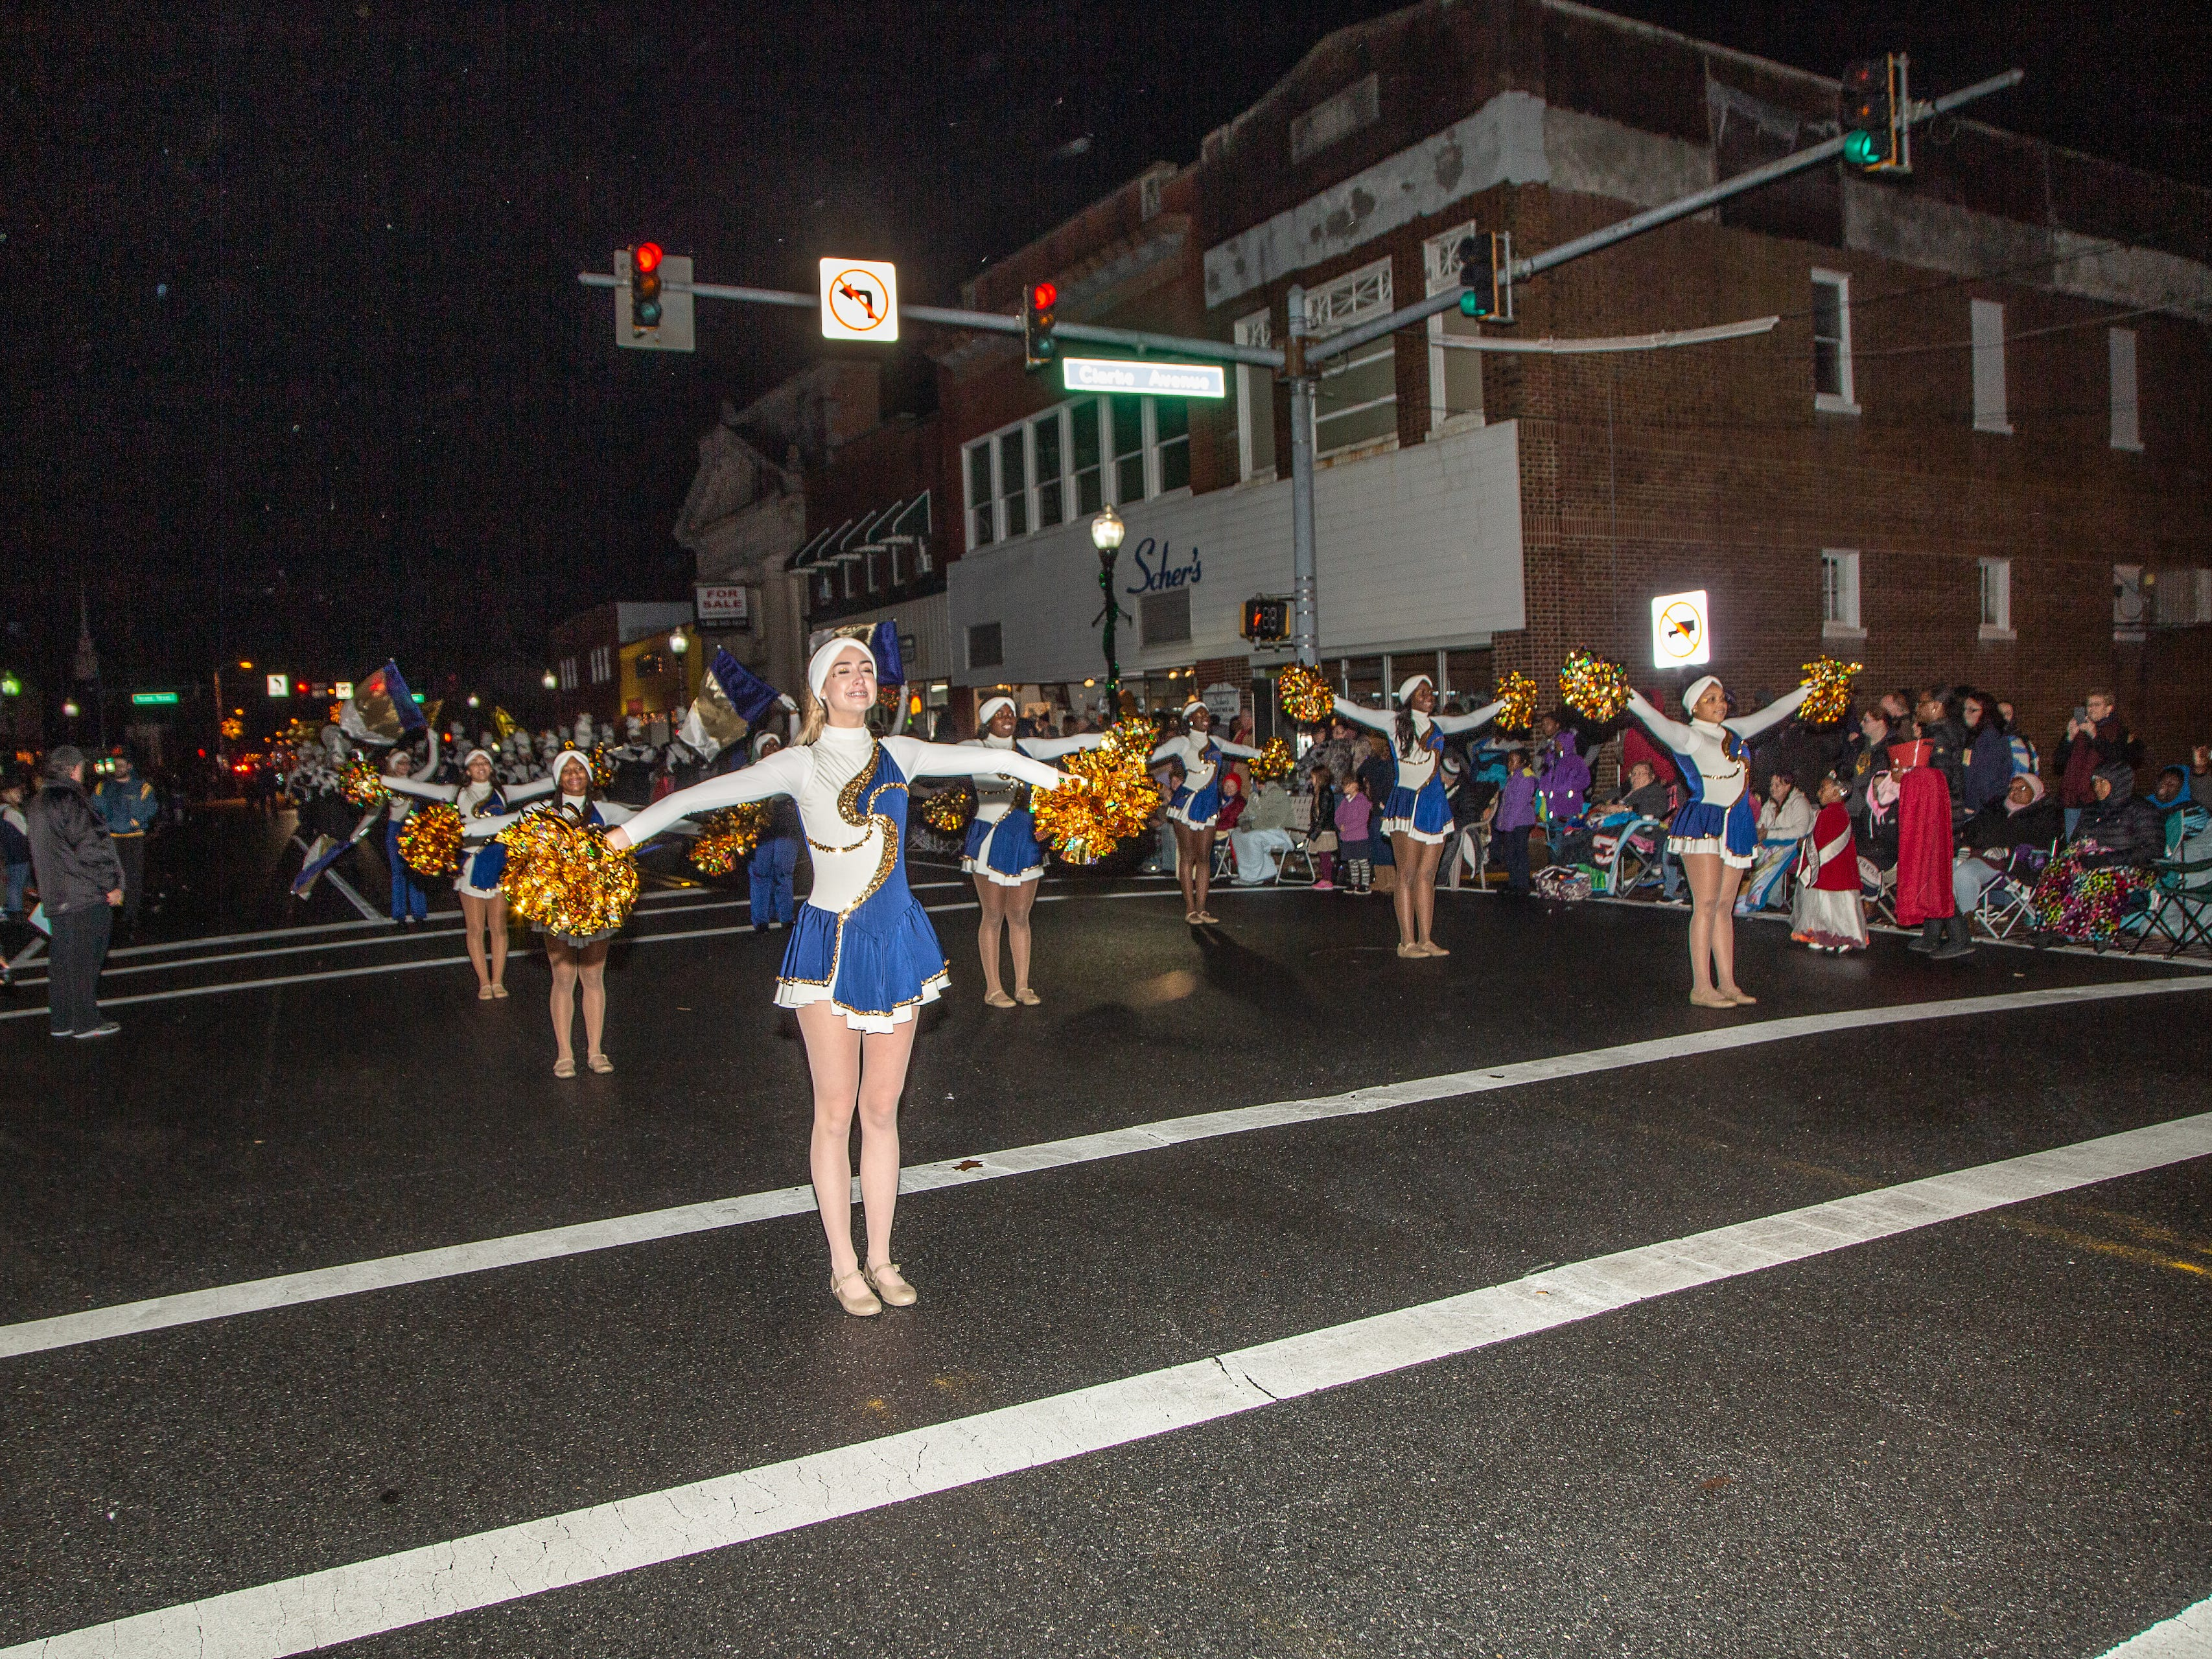 Pocomoke High School marching band takes part in the annual Christmas parade.